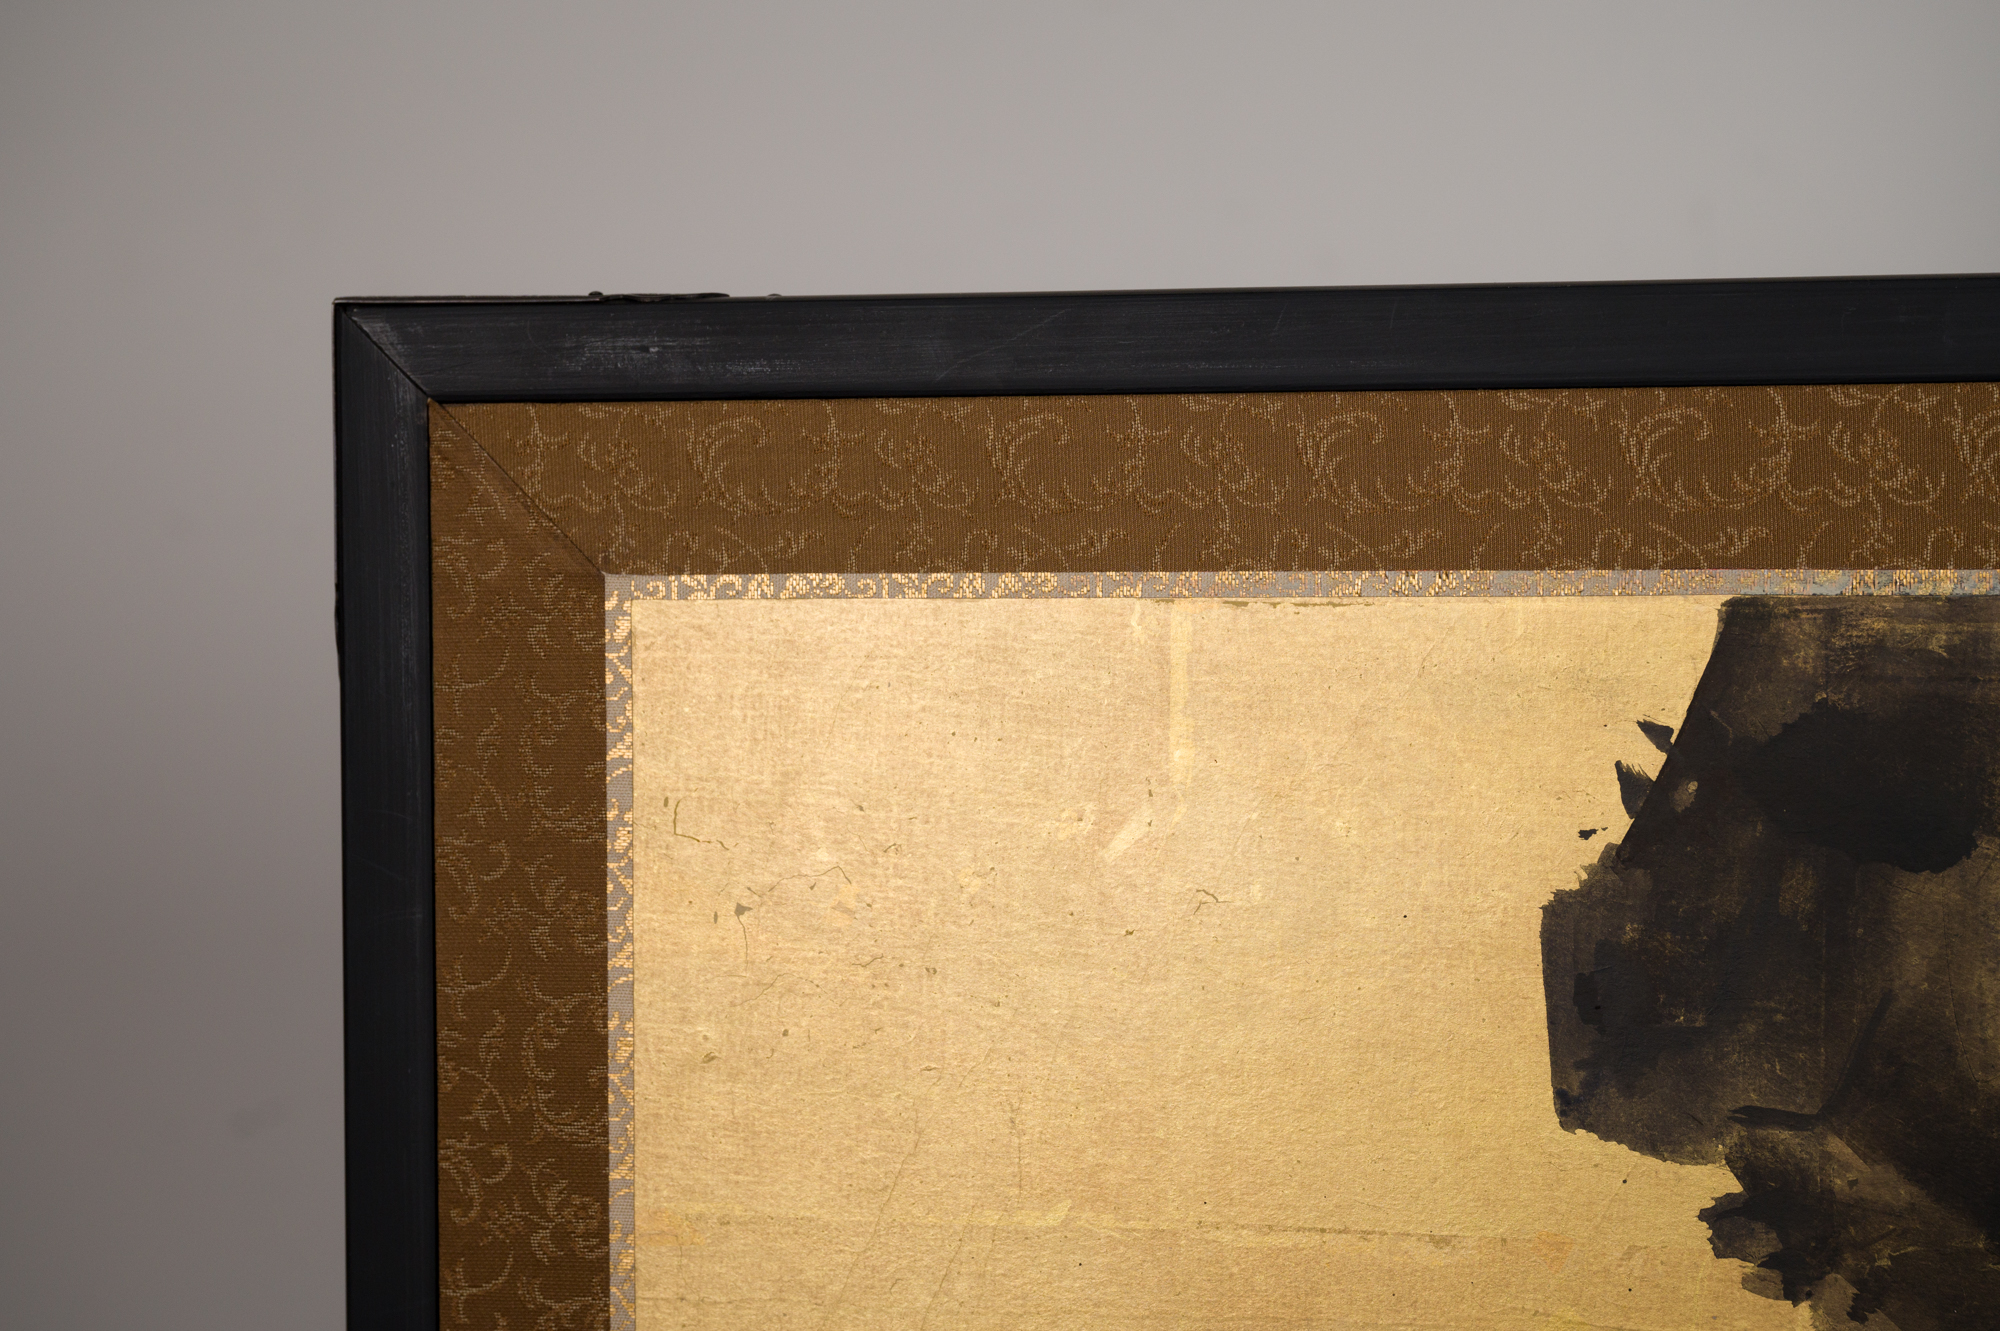 Japanese Two Panel Screen: Ocean Landscape, Rising Sun and Plum Branch on Gold Leaf